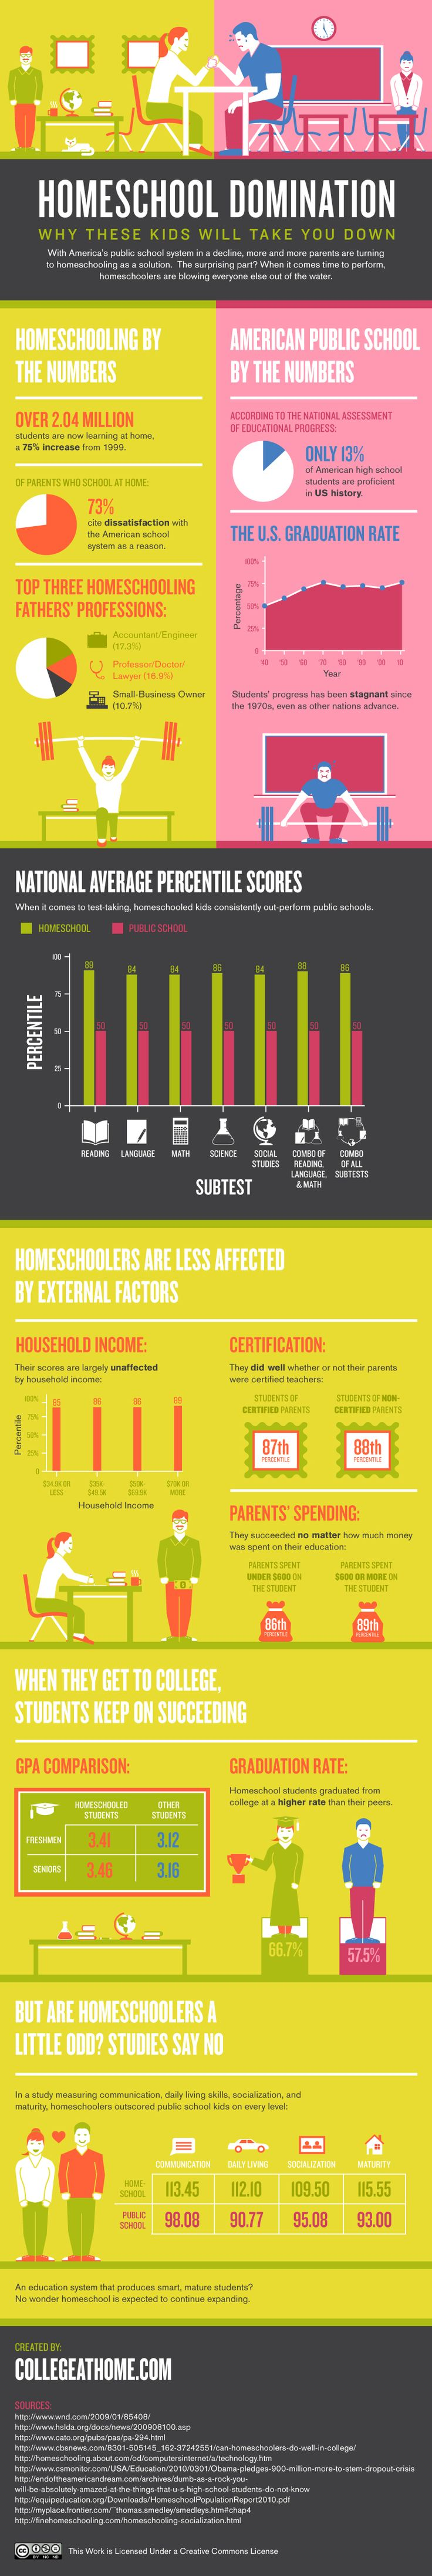 Interesting infographic for the homeschoolers out there